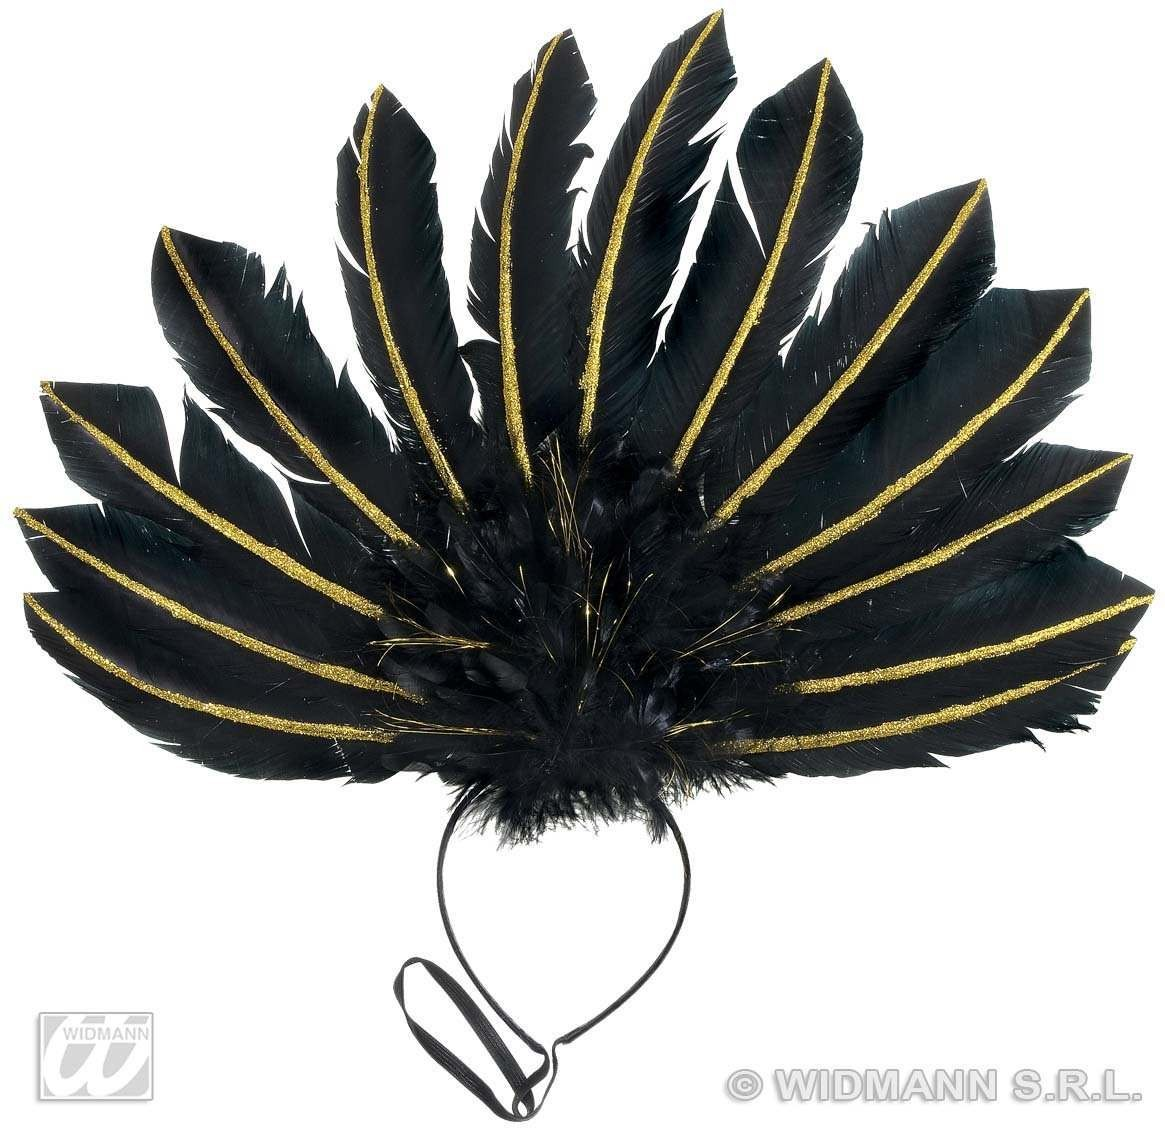 Blk Feathered Headbands W/Gold Glit Accents Fancy Dress